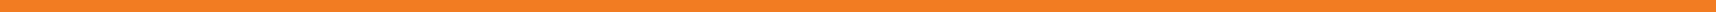 blue-bar-orange